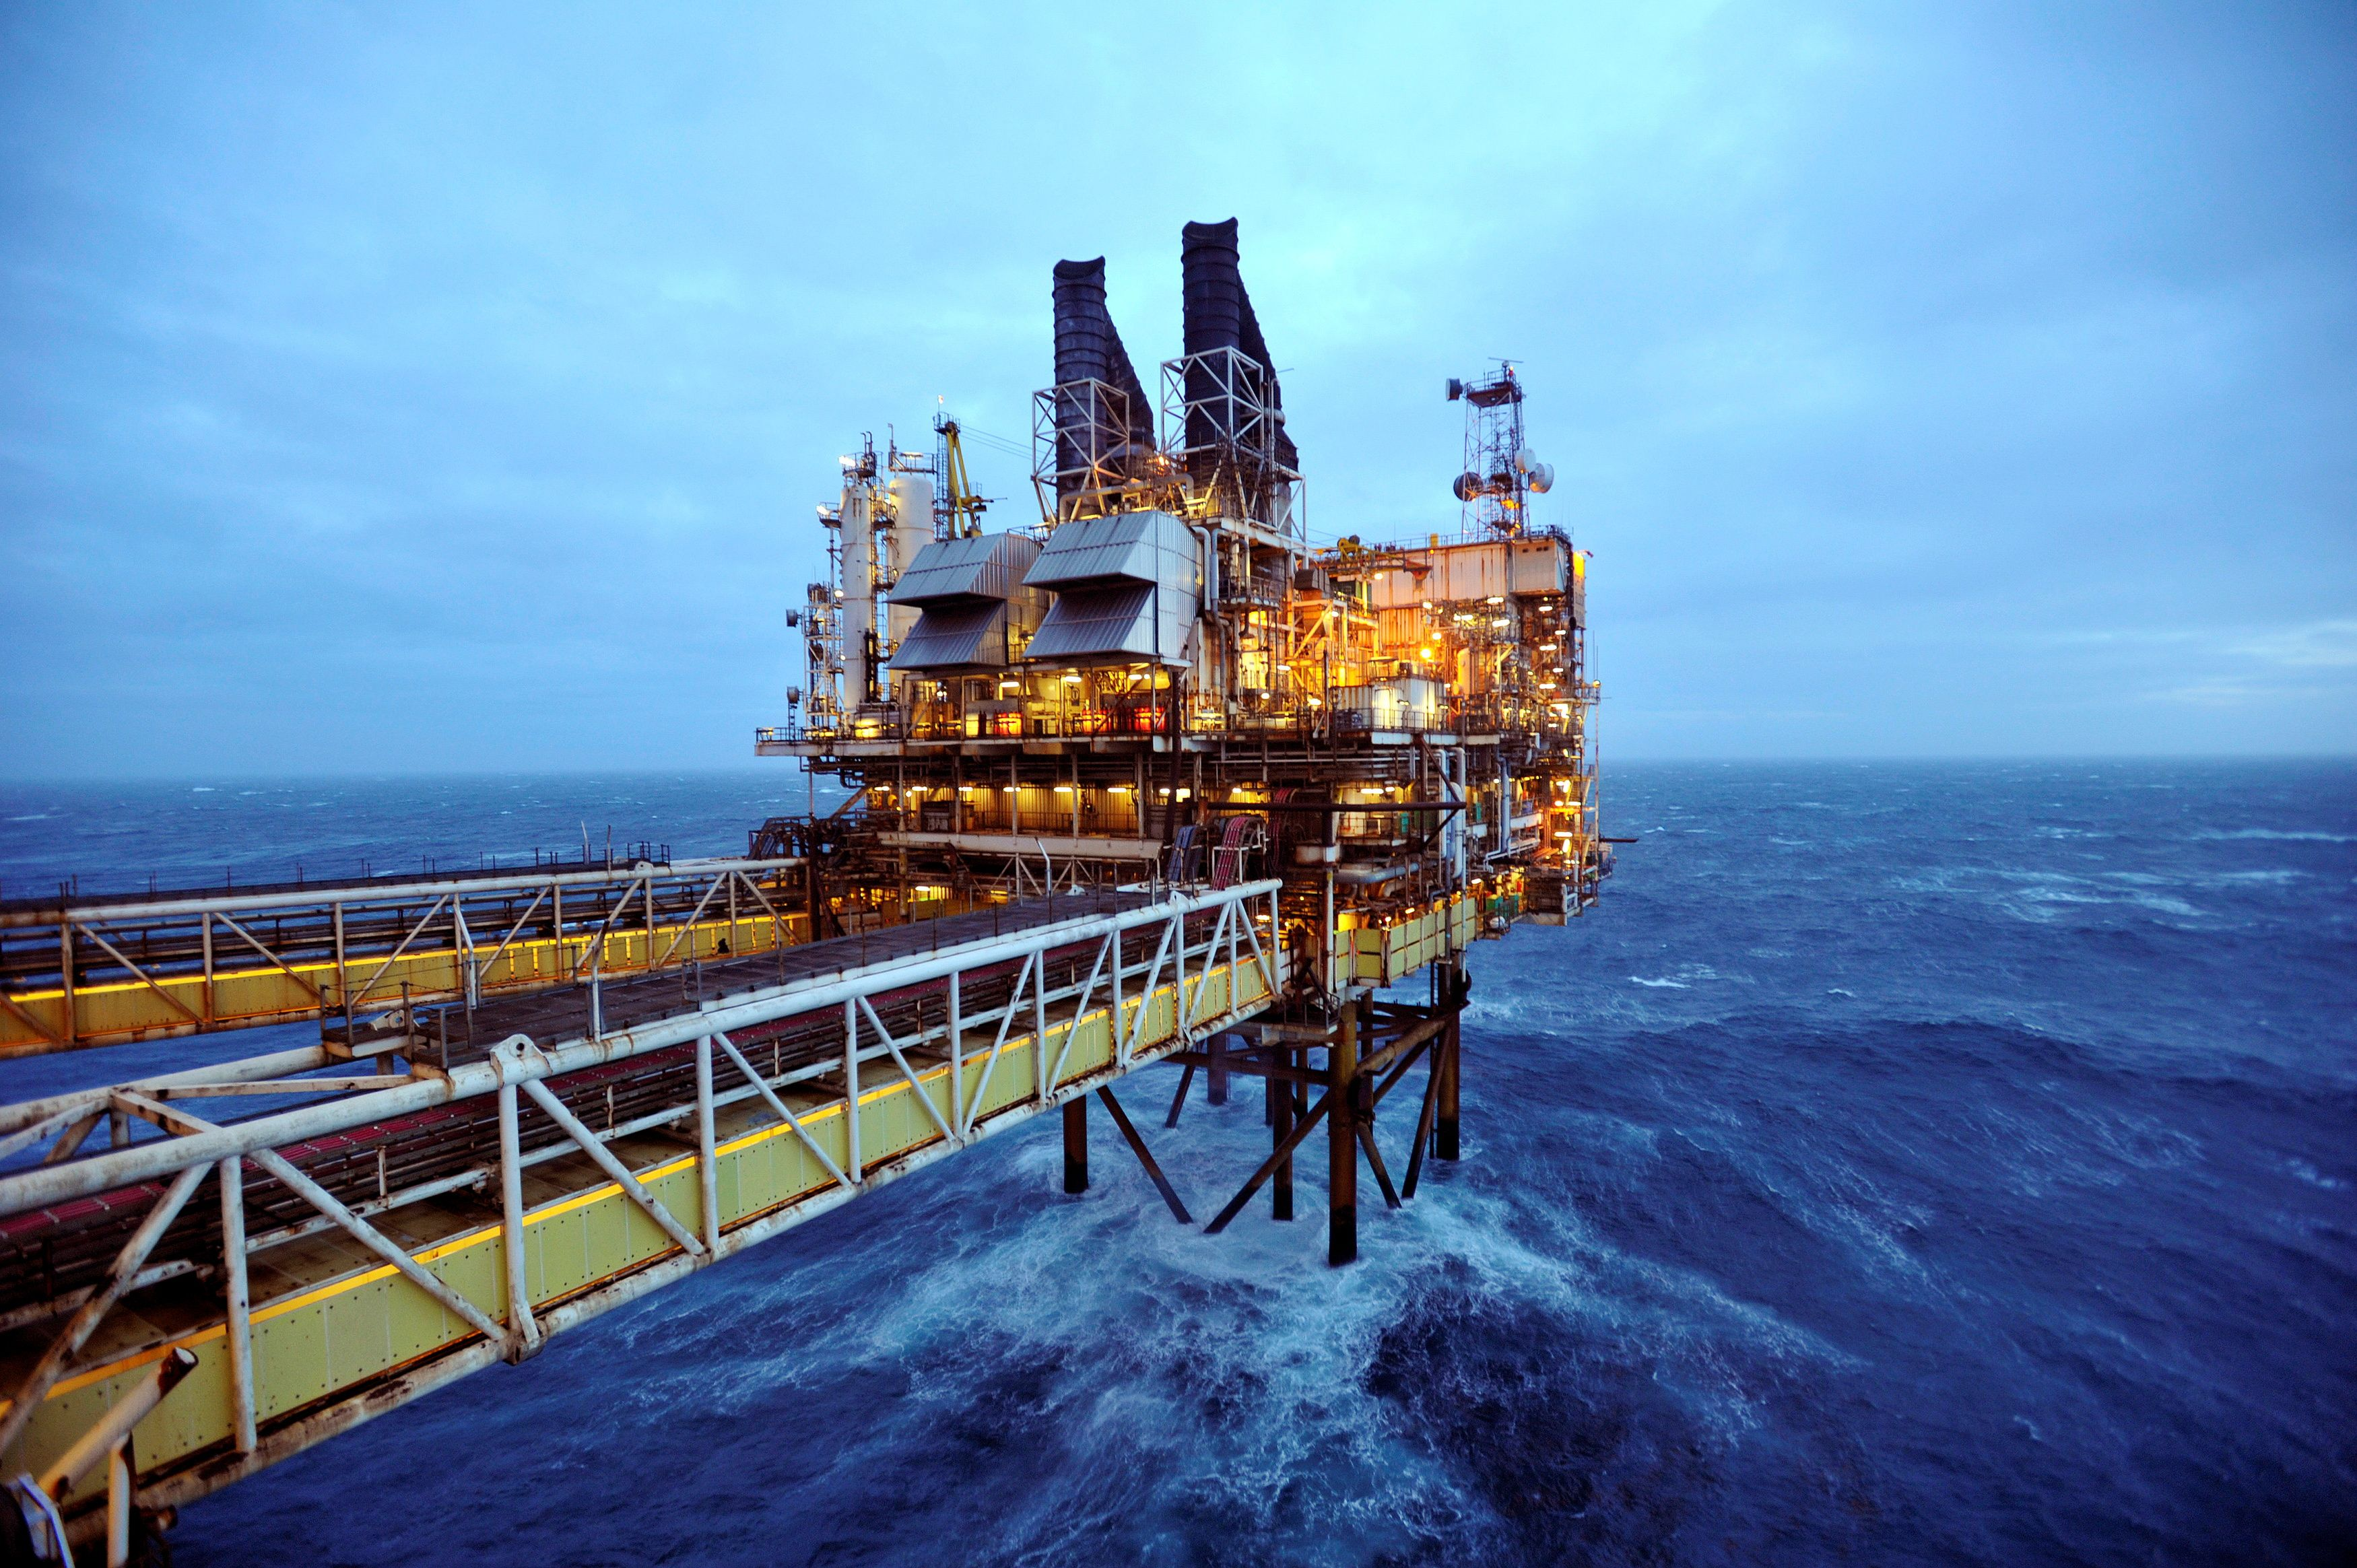 A section of the BP Eastern Trough Area Project (ETAP) oil platform is seen in the North Sea, about 100 miles east of Aberdeen in Scotland, February 24, 2014. REUTERS/Andy Buchanan/pool/File Photo